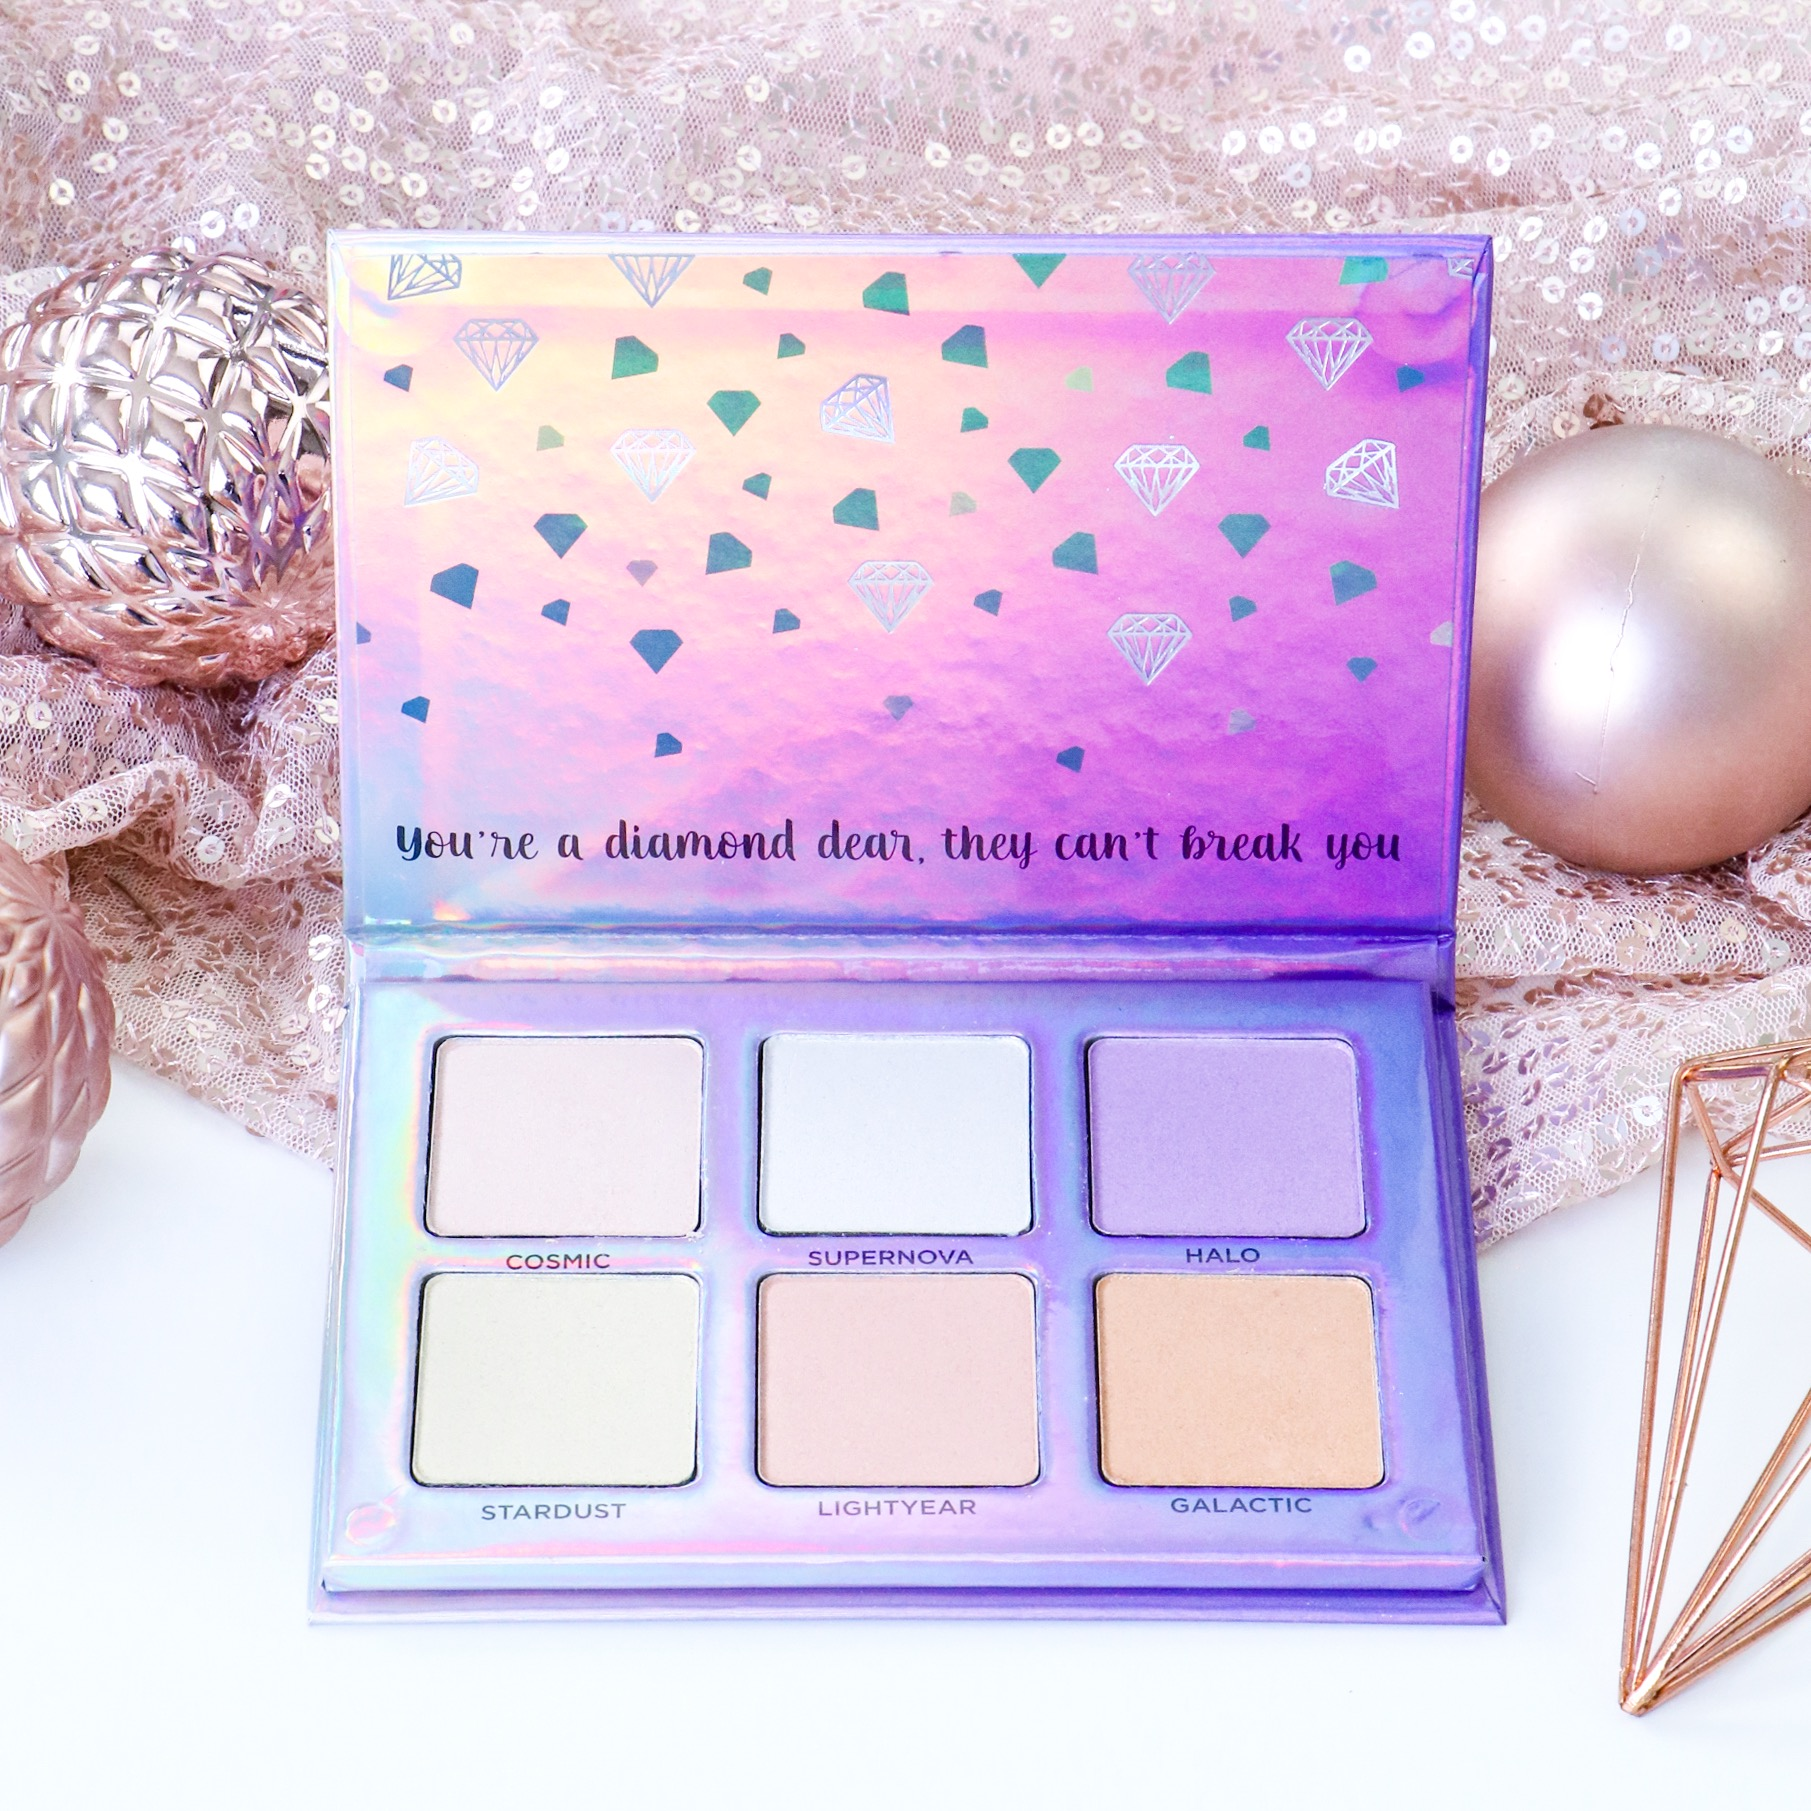 Designer Brands Oh My Glow Highlight Kit - Cruelty Free Gift Guide